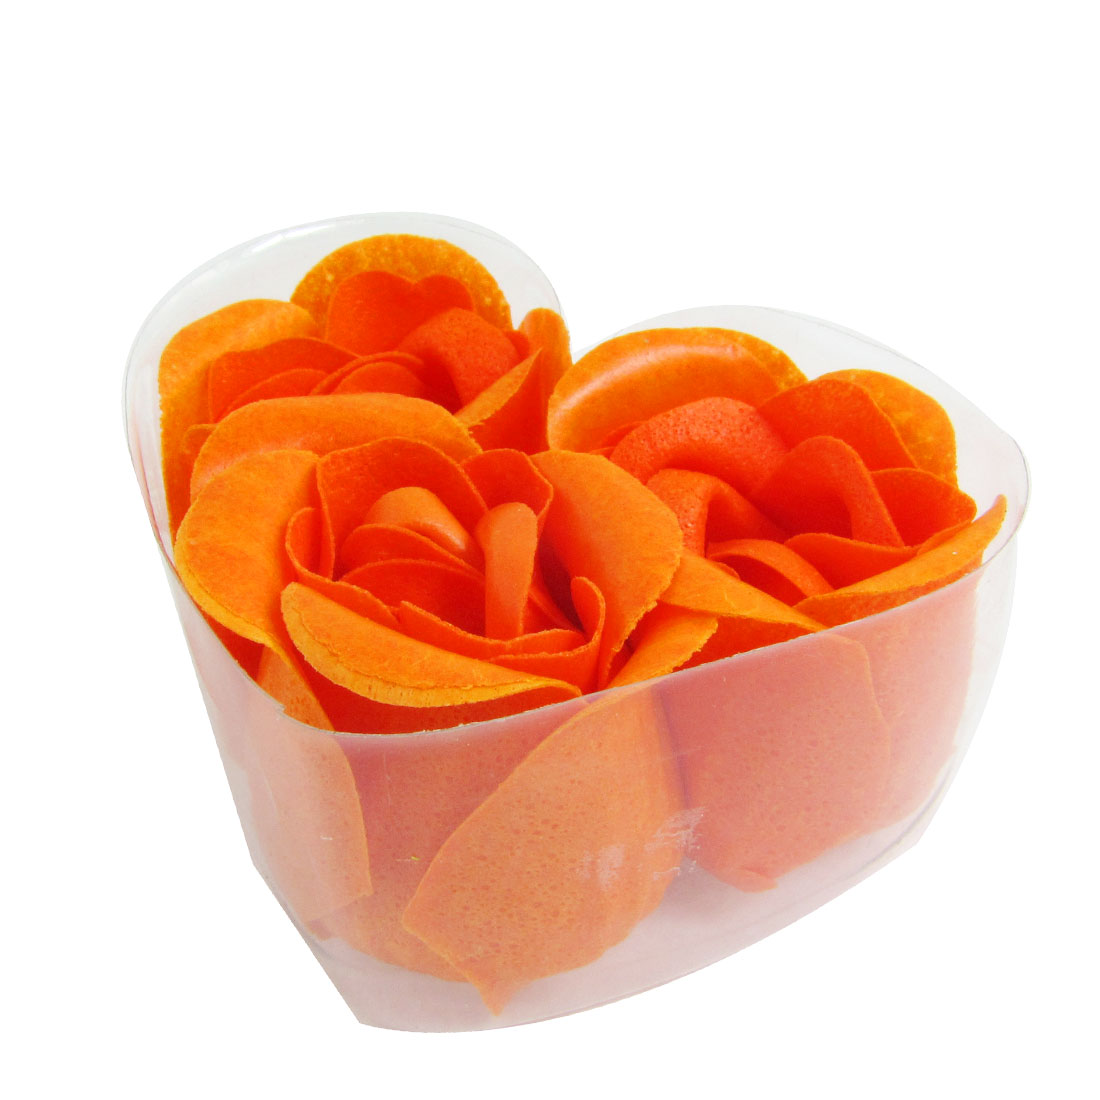 3 Pcs Bowknot Detail Heart Shape Box Bath Soap Flowers Rose Petals Orange